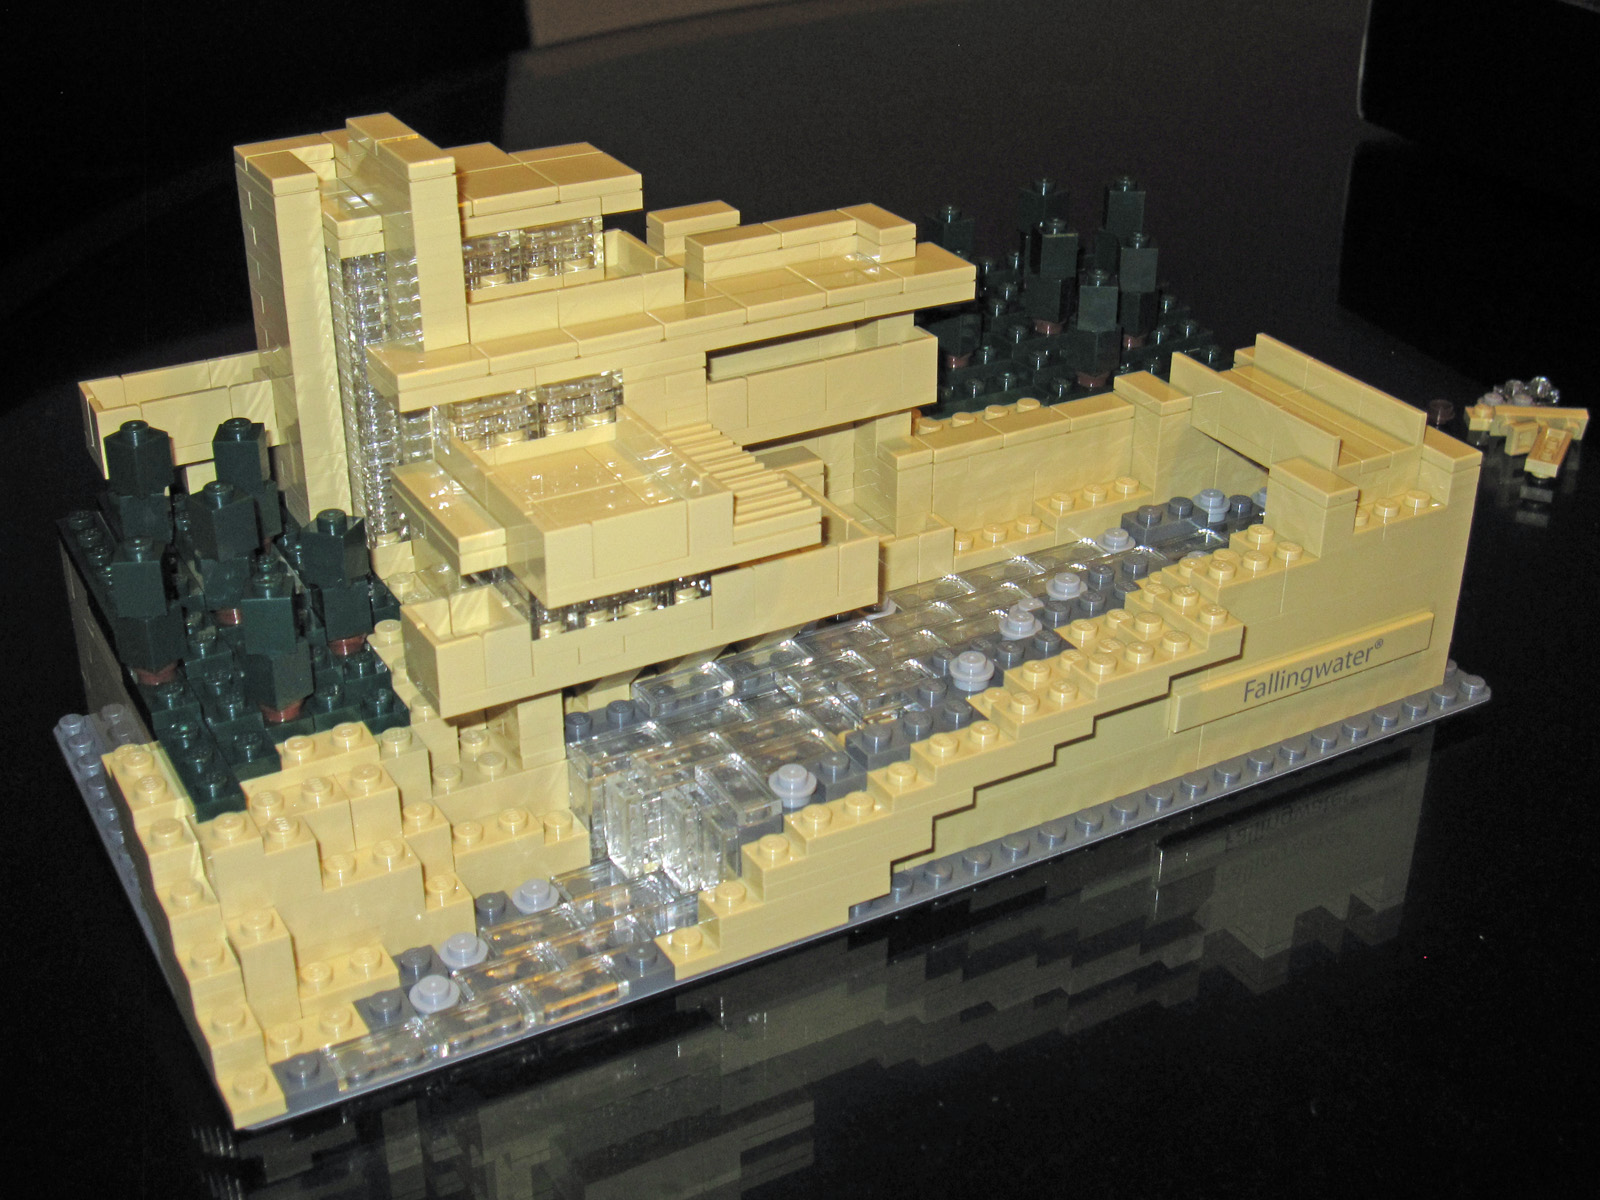 file lego architecture 21005 fallingwater 7331205756 jpg